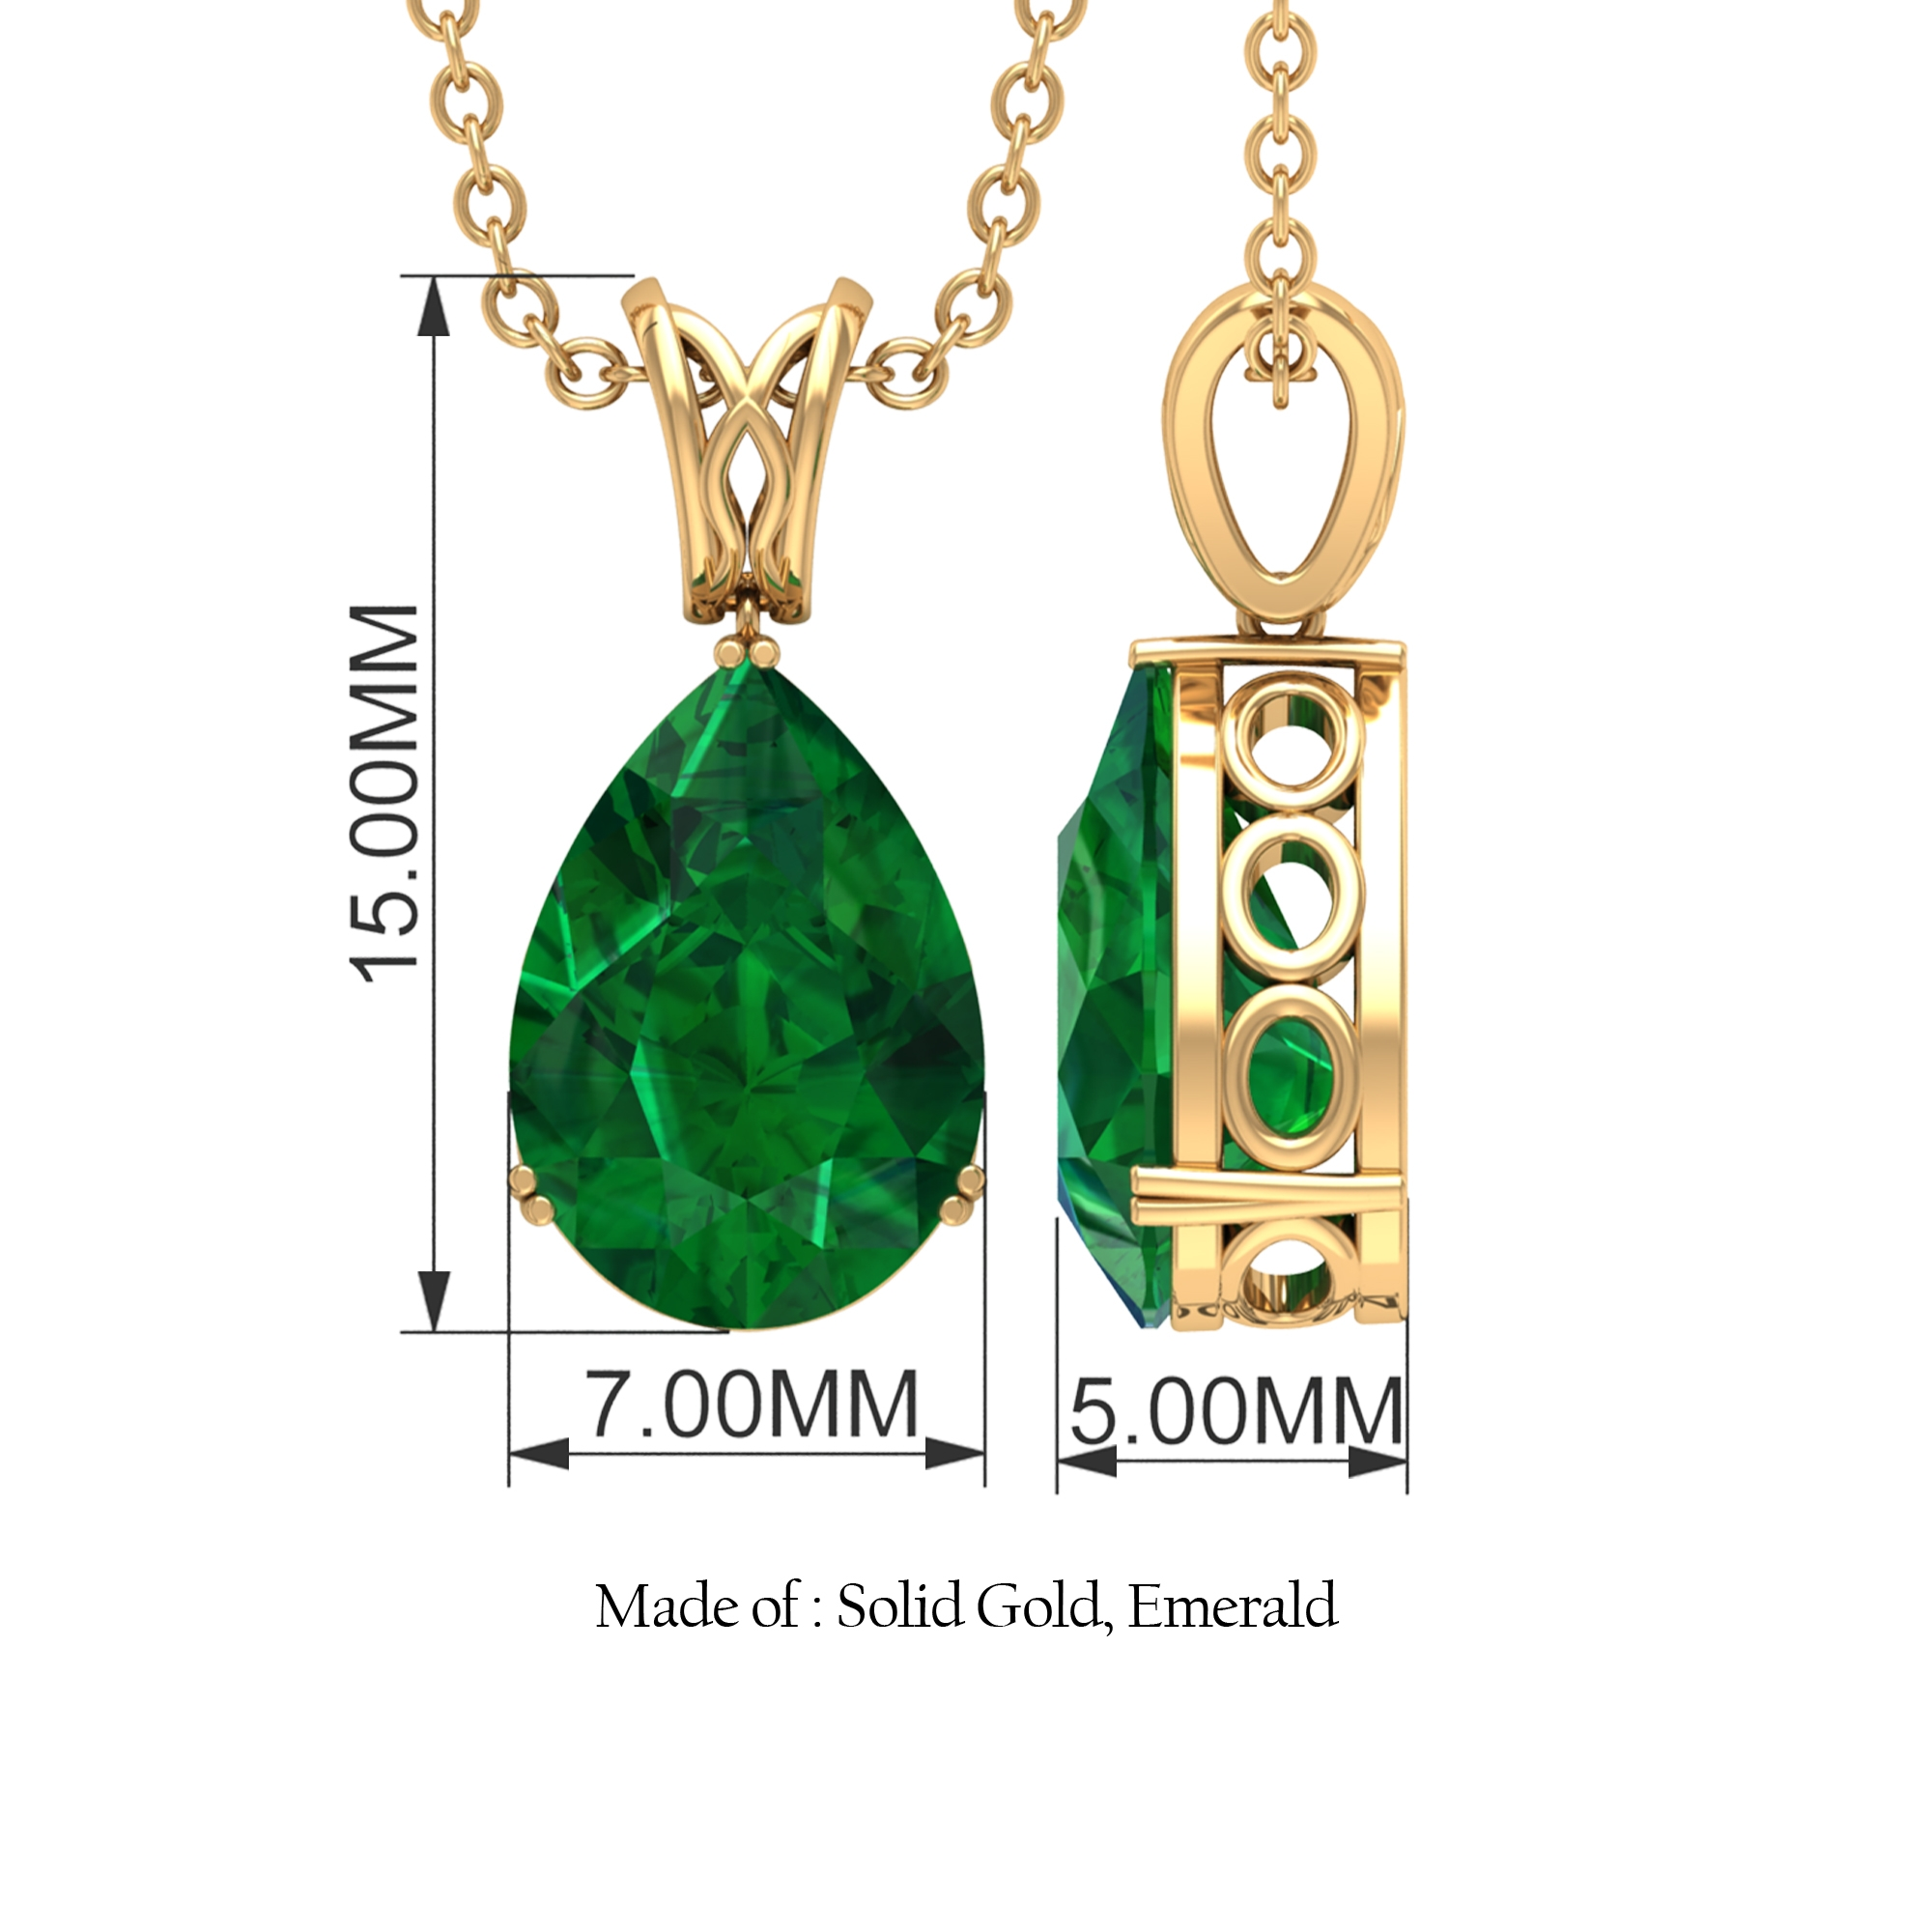 2 CT Pear Cut Emerald Pendant in Double Prong Set with Decorative Bale Design